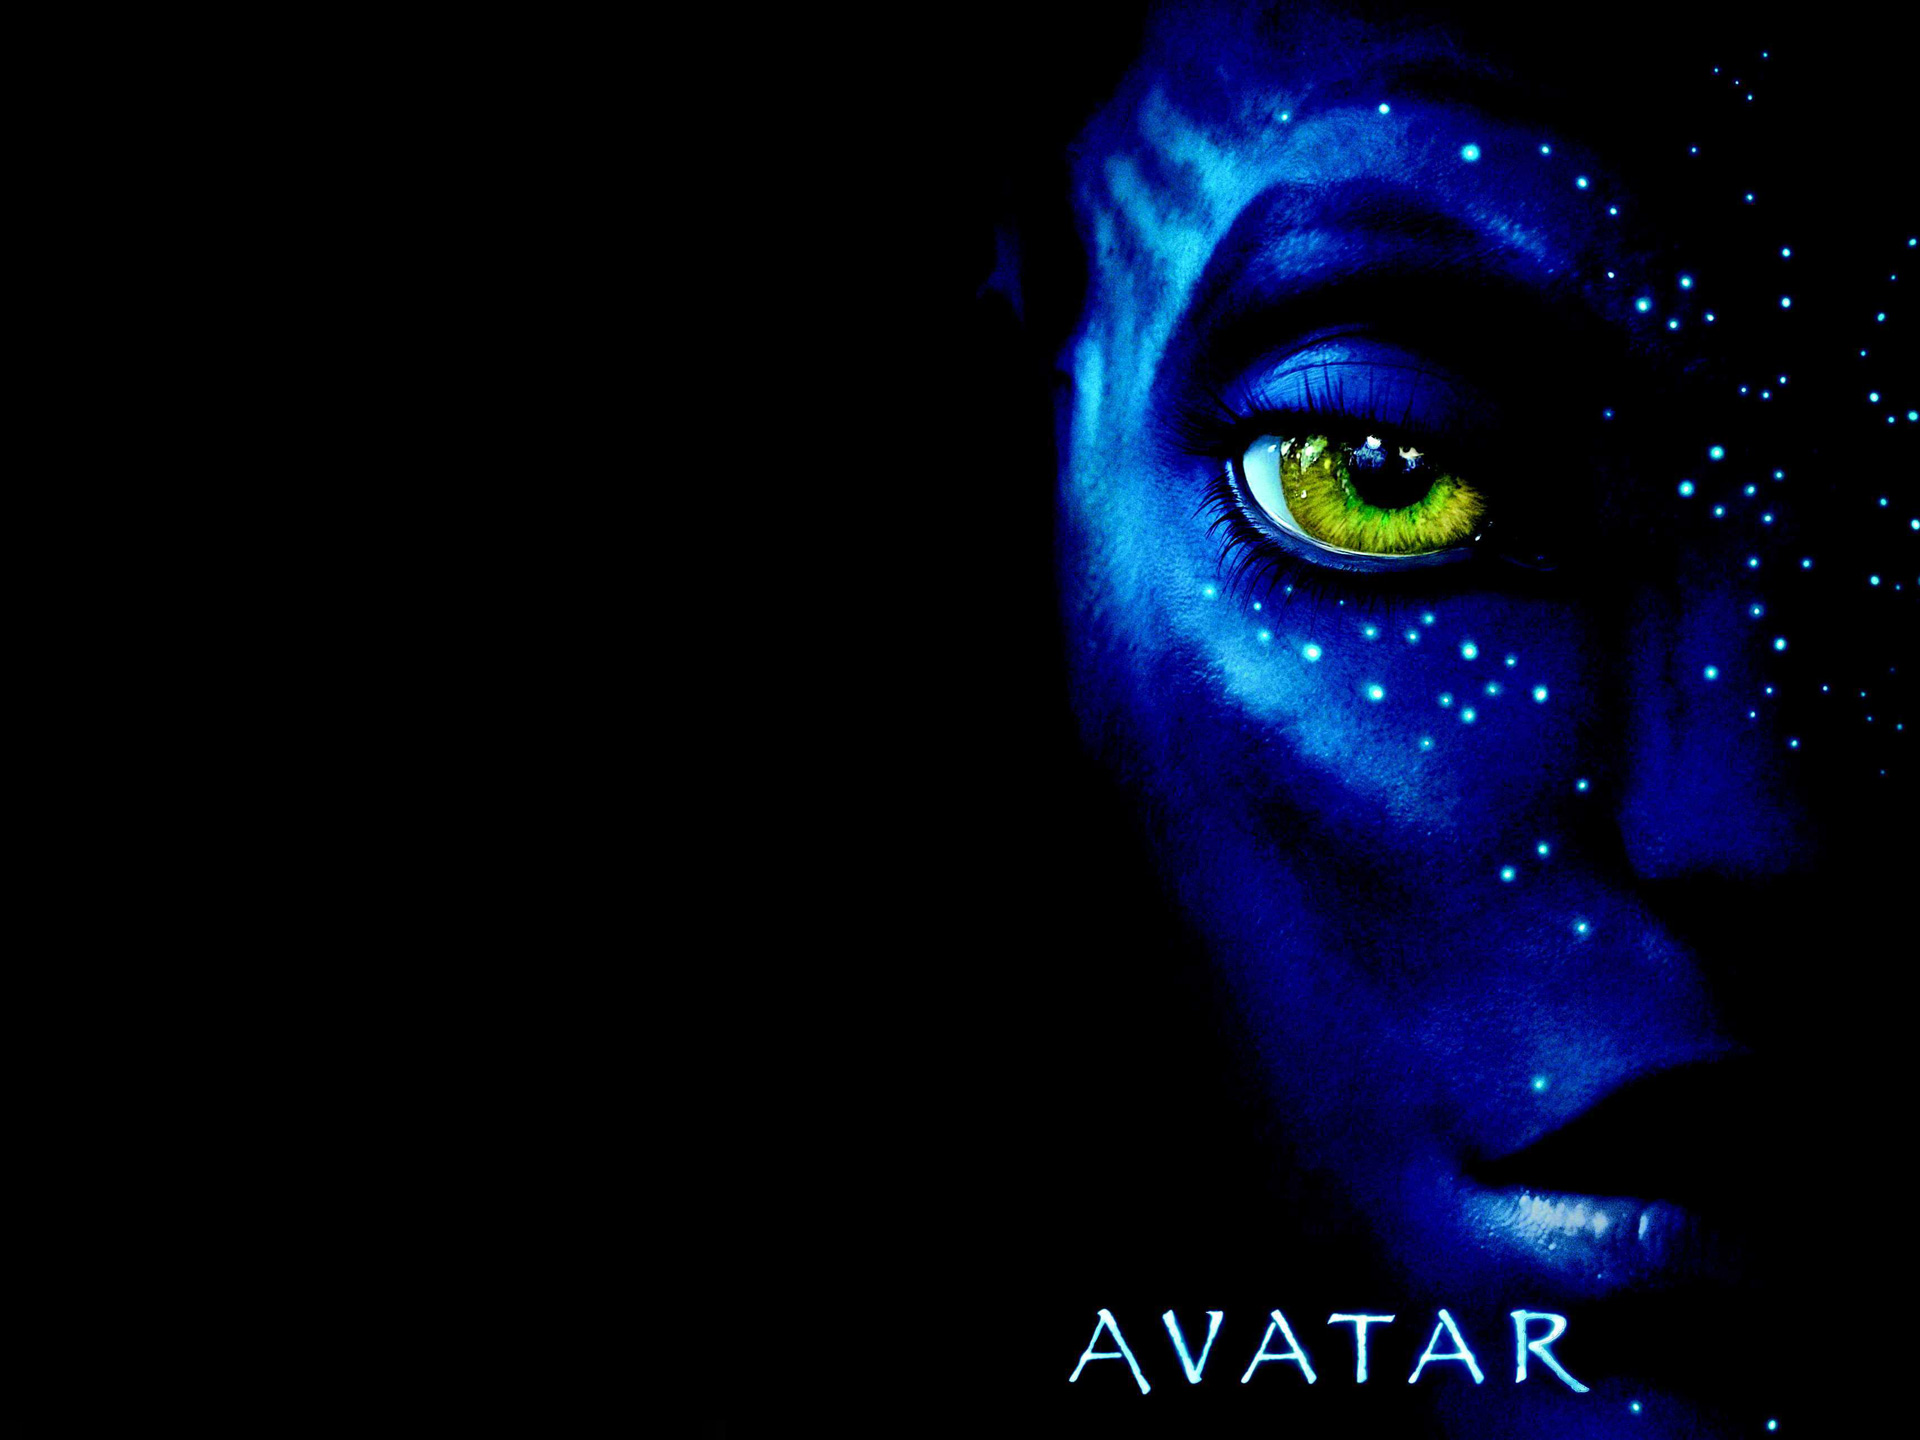 Avatar 4k Wallpapers For Your Desktop Or Mobile Screen Free And Easy